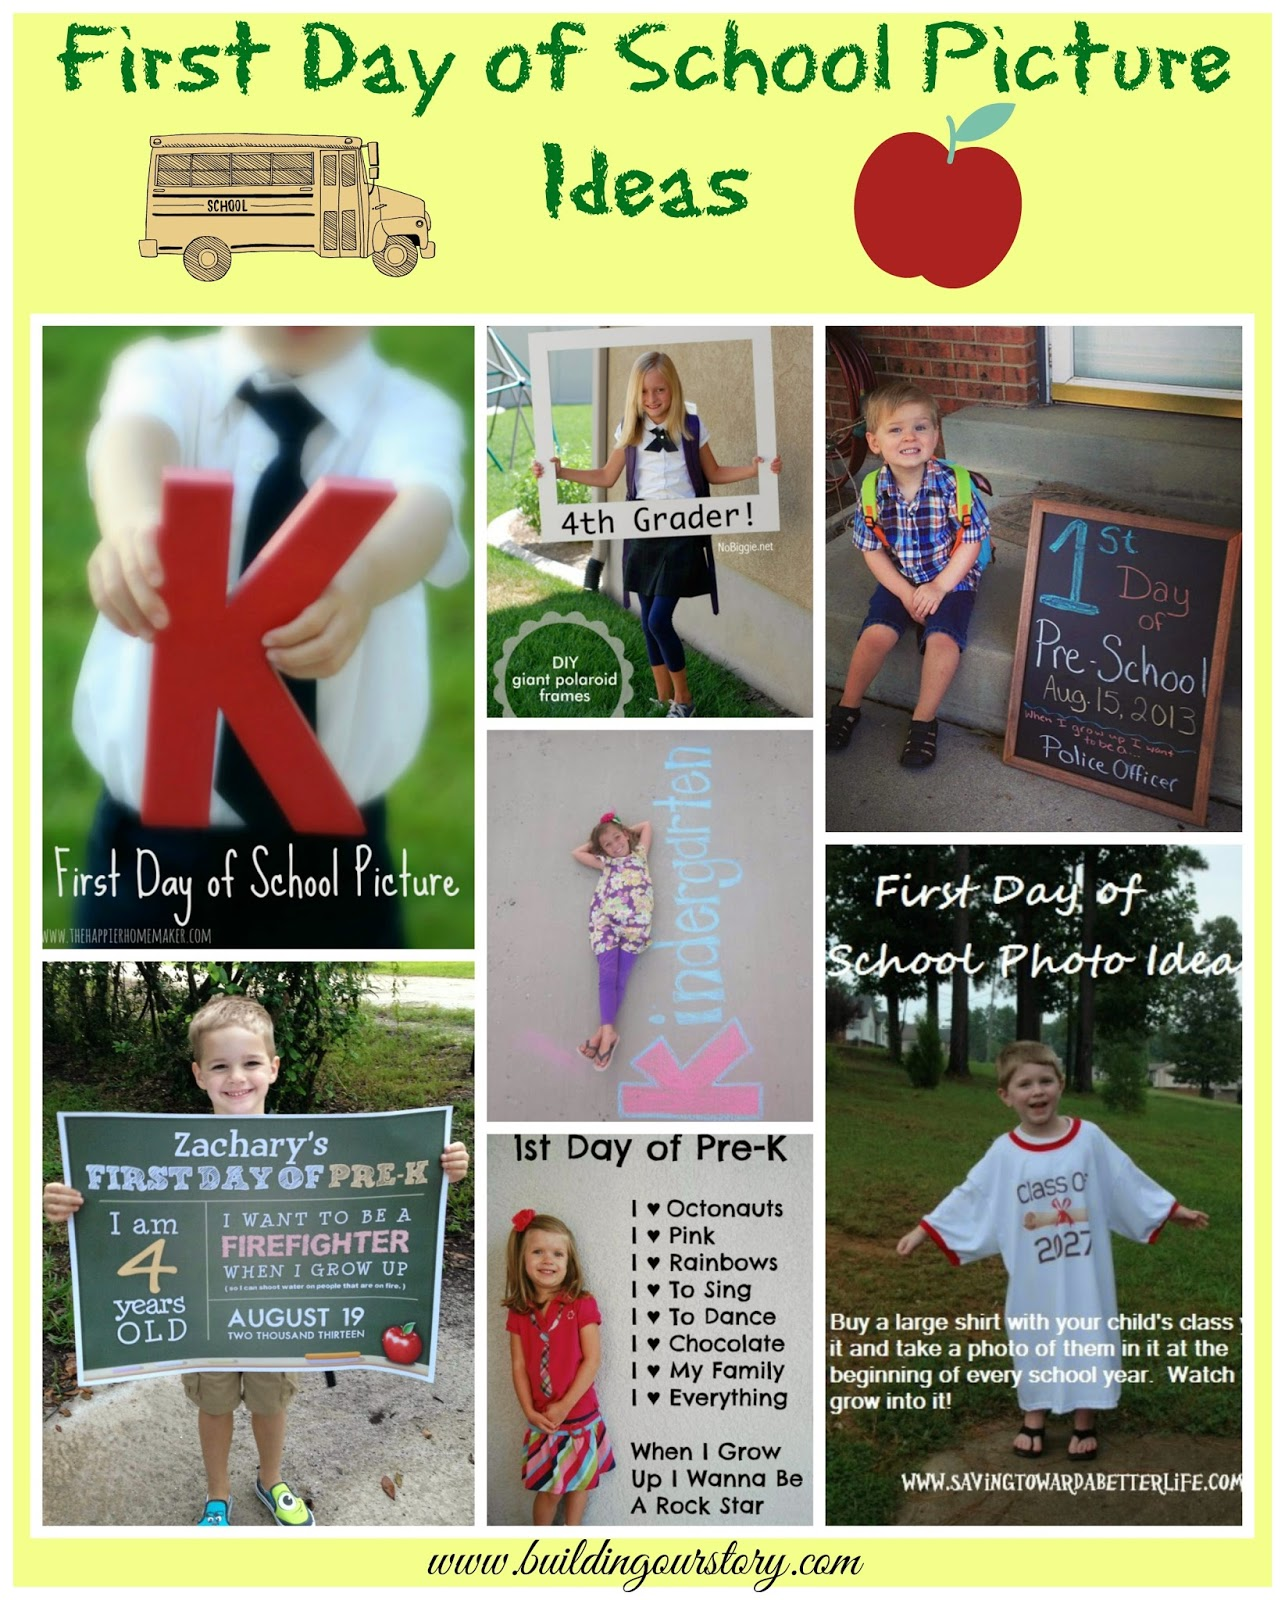 First Day of School Picture Ideas.  1st Day of School photo ideas.  First day of school picture idea.  First day of school fun!  Easy first day of school pictures.